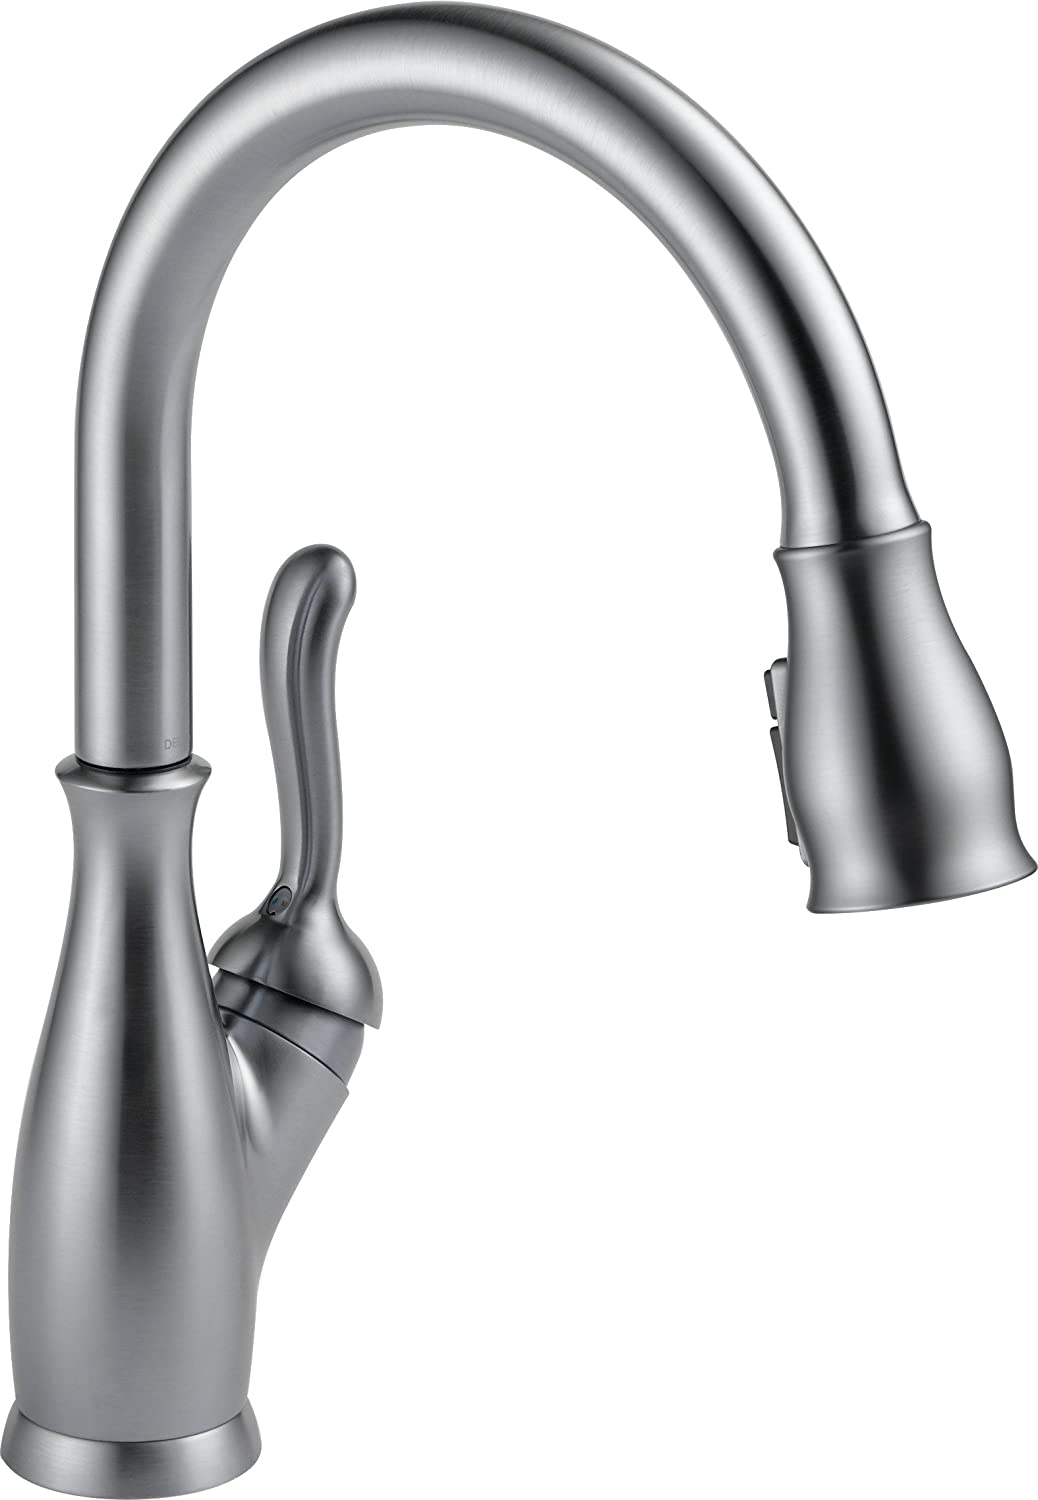 Leland single handle faucet by Delta